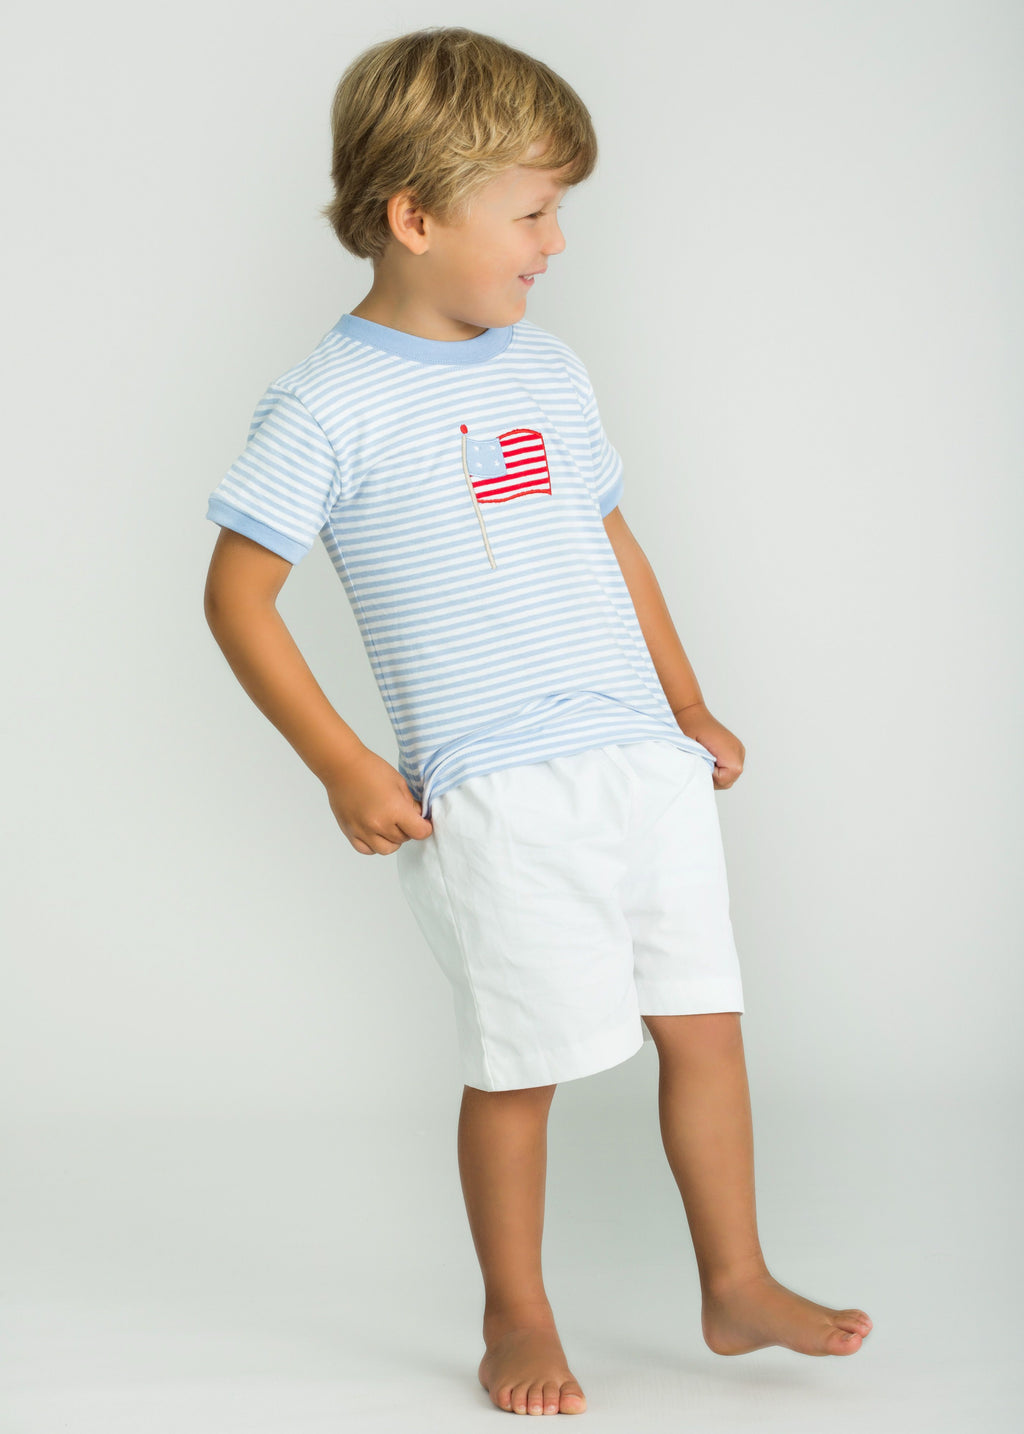 Applique T-shirt - Flag - Born Childrens Boutique